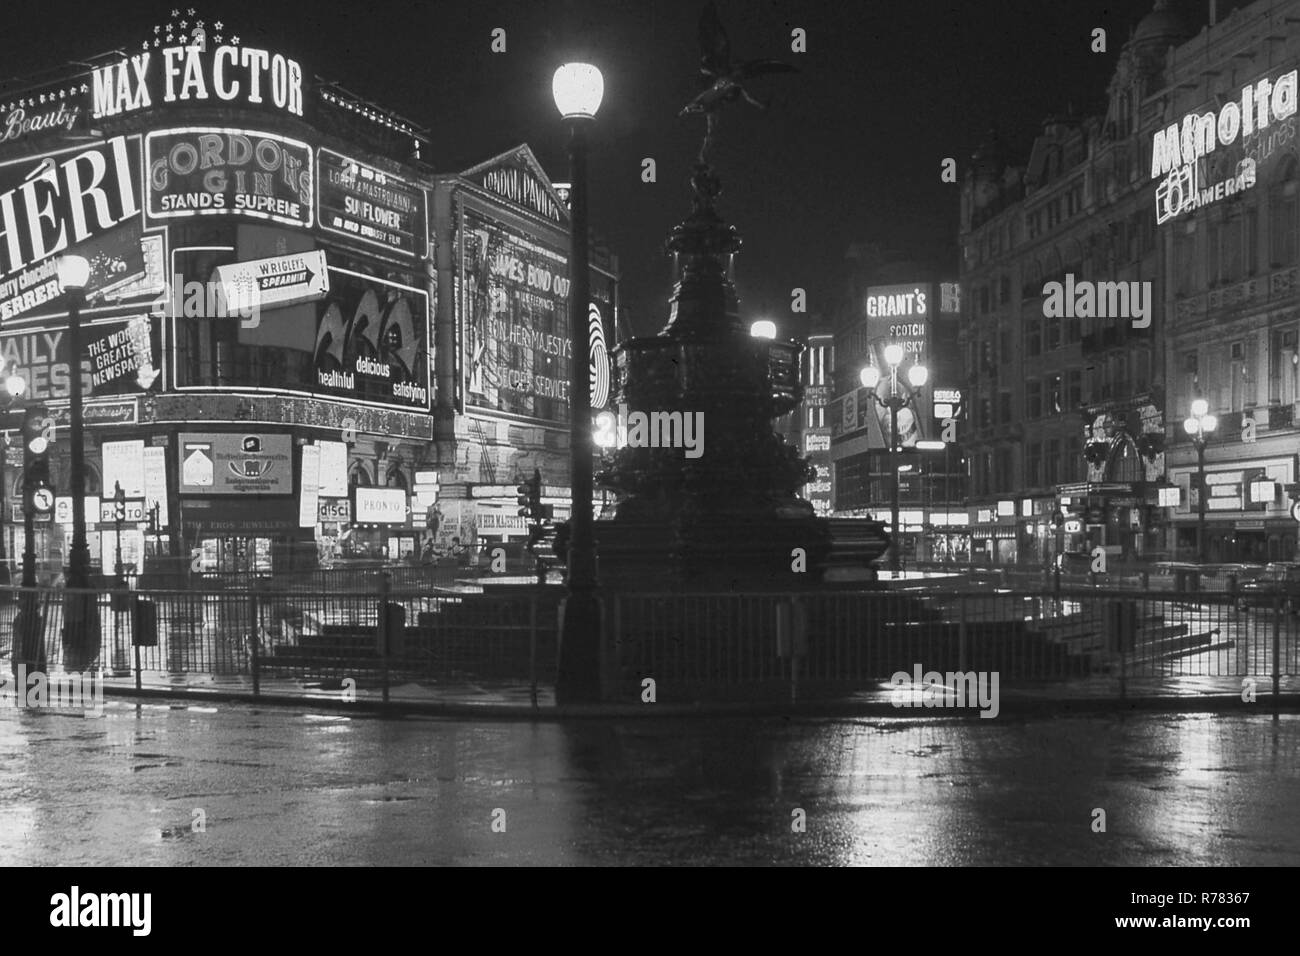 1969, a wet central London night, seen here is the Shaftesbury Memorial Fountain, more commonly known as statue of eros at Piccadilly Circus, with the neon lights of the surrounding advertising billboards. Showing at the London Pavilion, the new James Bond film, 'On Her Majesty's Secret Service', the sixth film in the Bond 007 series. - Stock Image